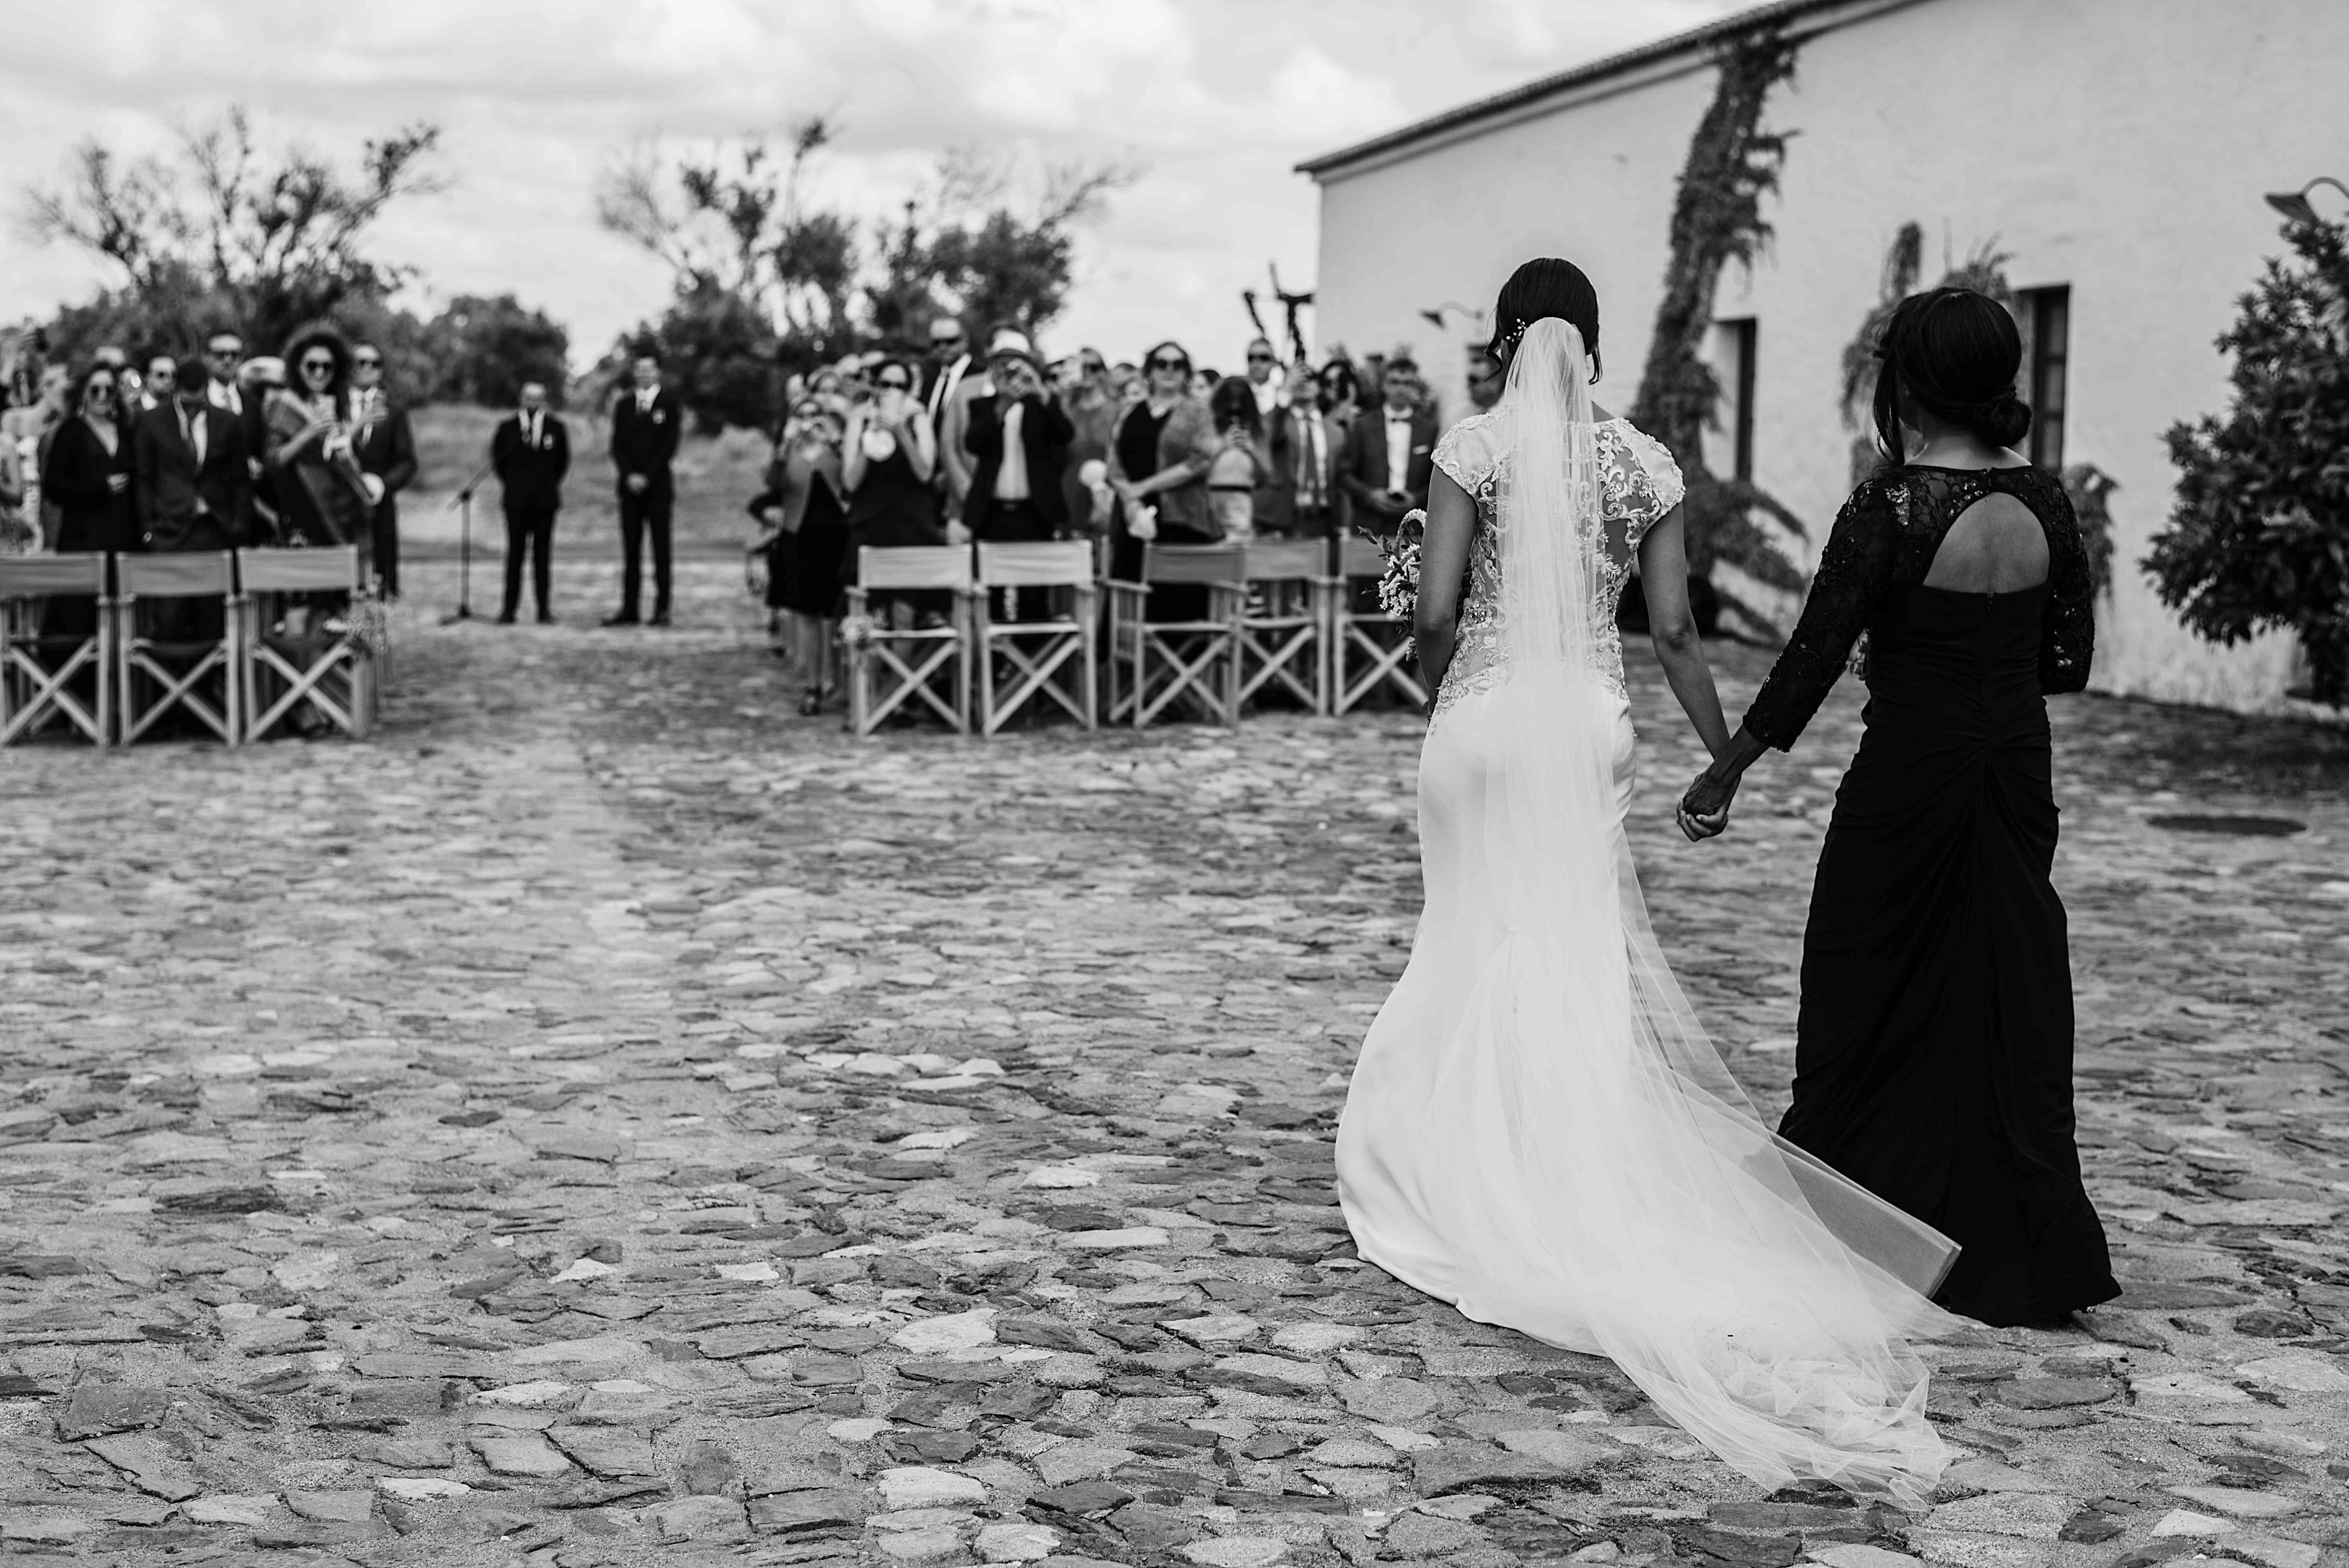 Bride and mother entering cermeony